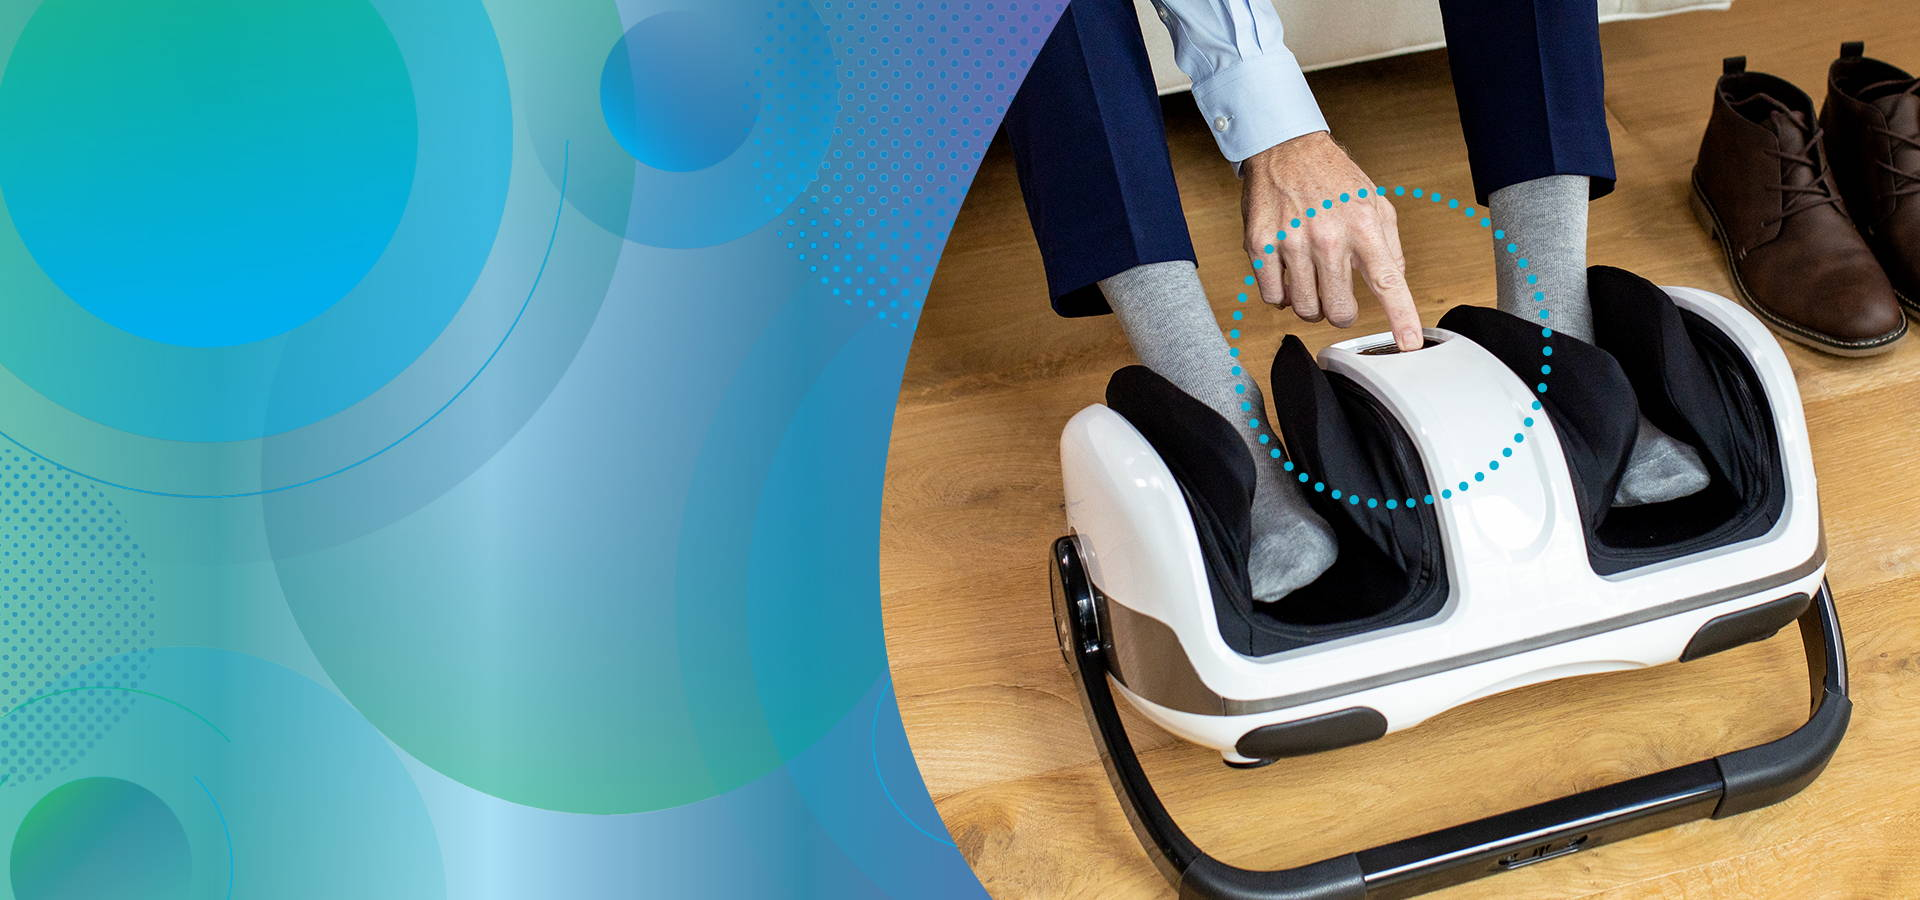 Shiatsu foot massager is a one stop solution for tired, achy feet and sore calves